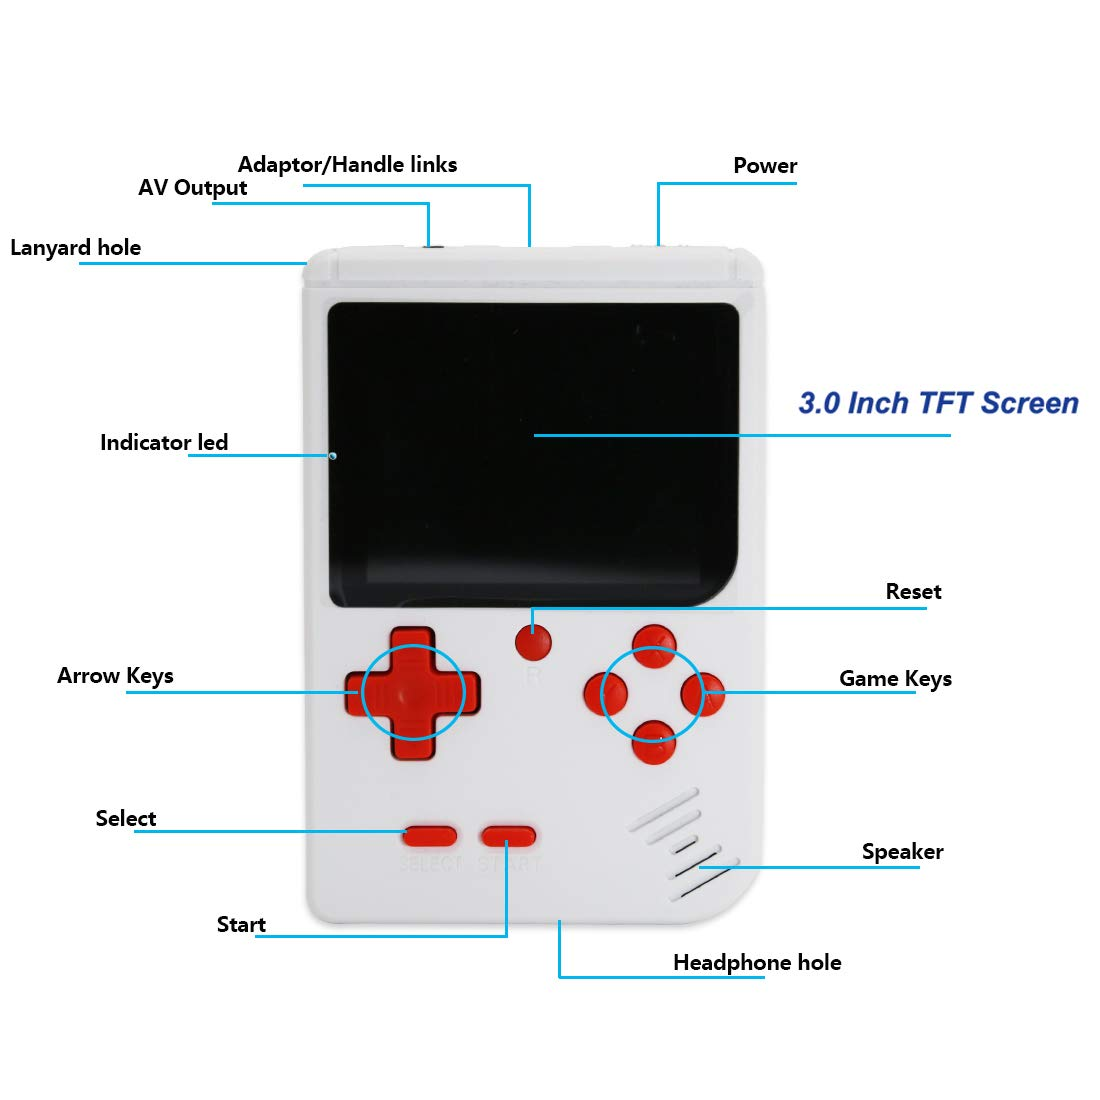 AKTOUGST Handheld Game Console, Retro Game Console 400 Classic Game FC System Video 3 Inch with Headphone Portable Mini Extra Joystick Controller Support TV 2 Player,Gift for Children Adult, (White) by AKTOUGST (Image #4)